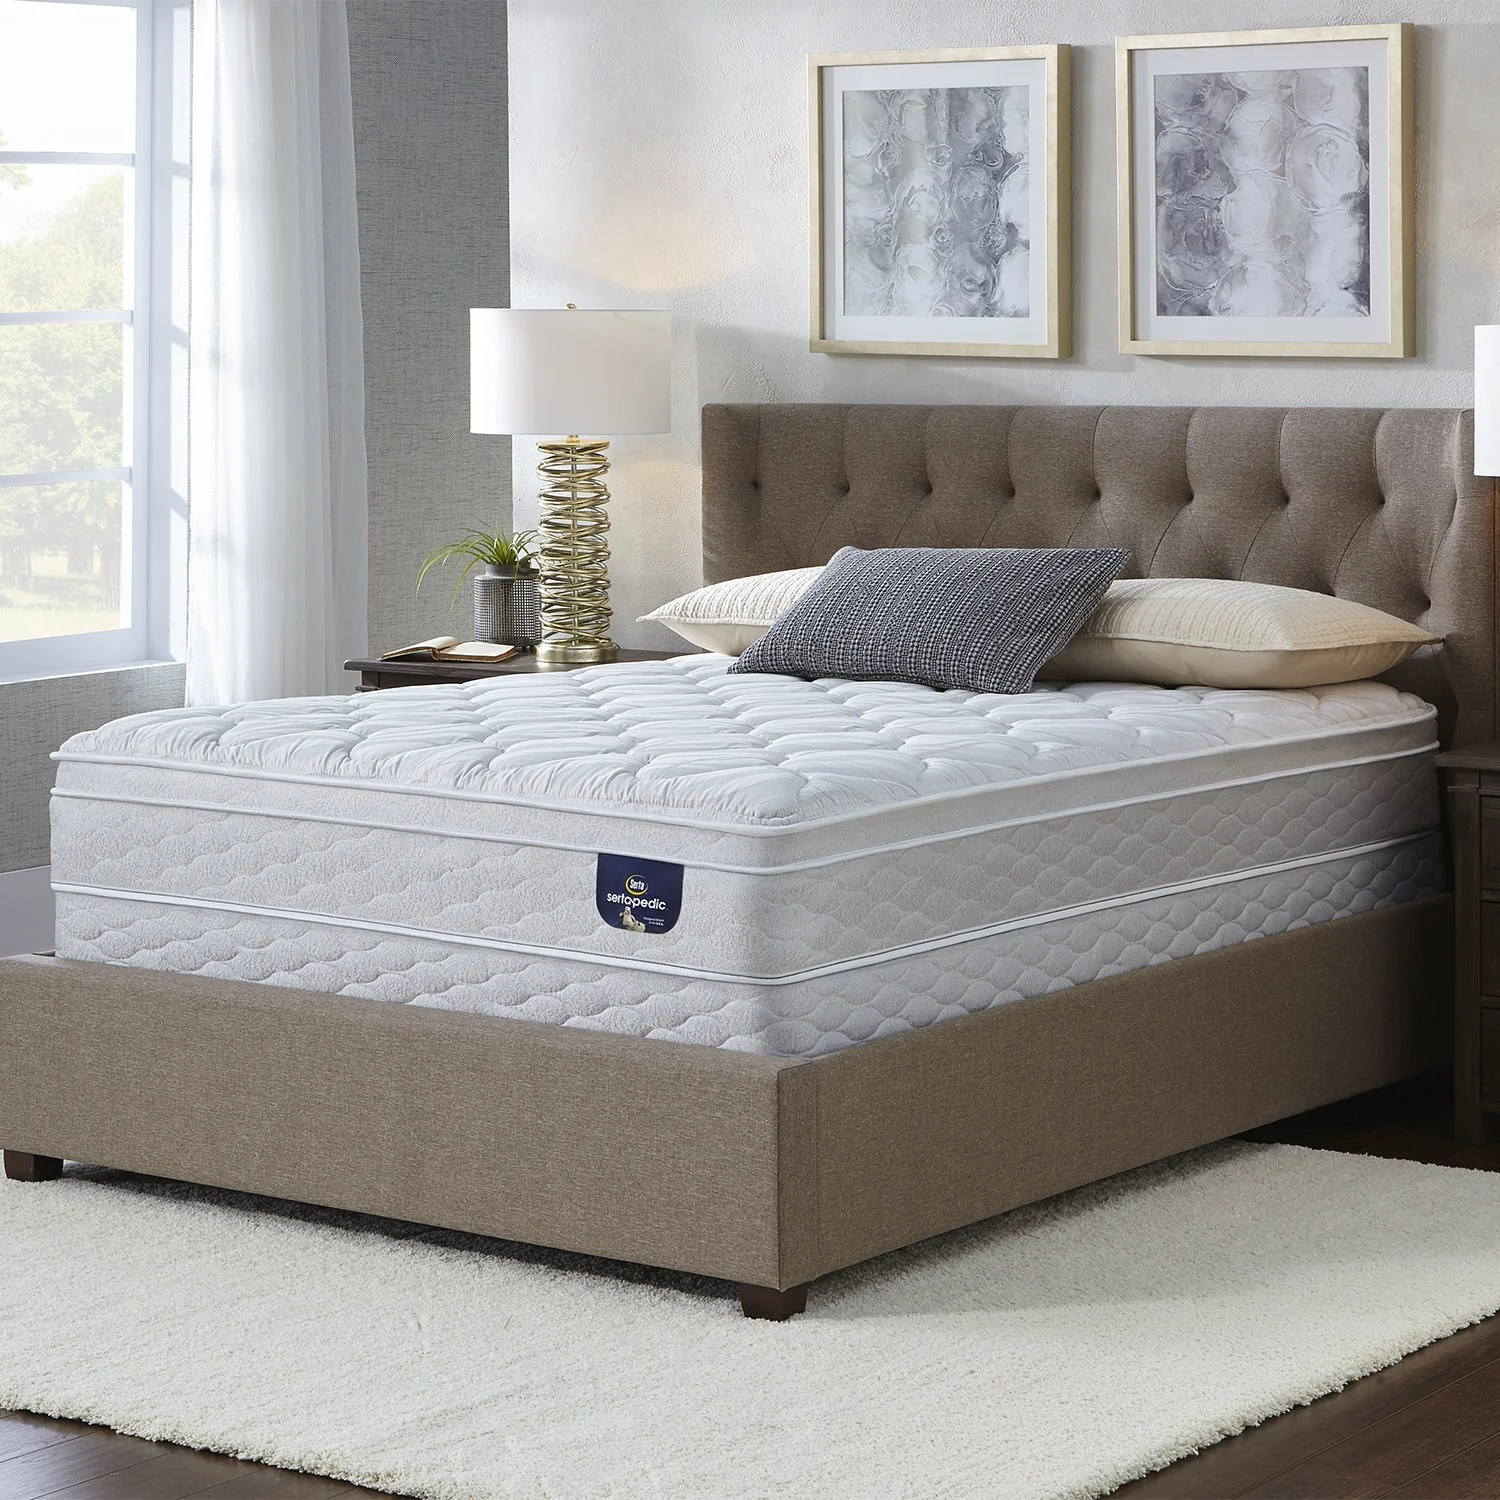 Serta Icomfort Applause Reviews Buy Serta Mattresses Online At Overstock Our Best Bedroom